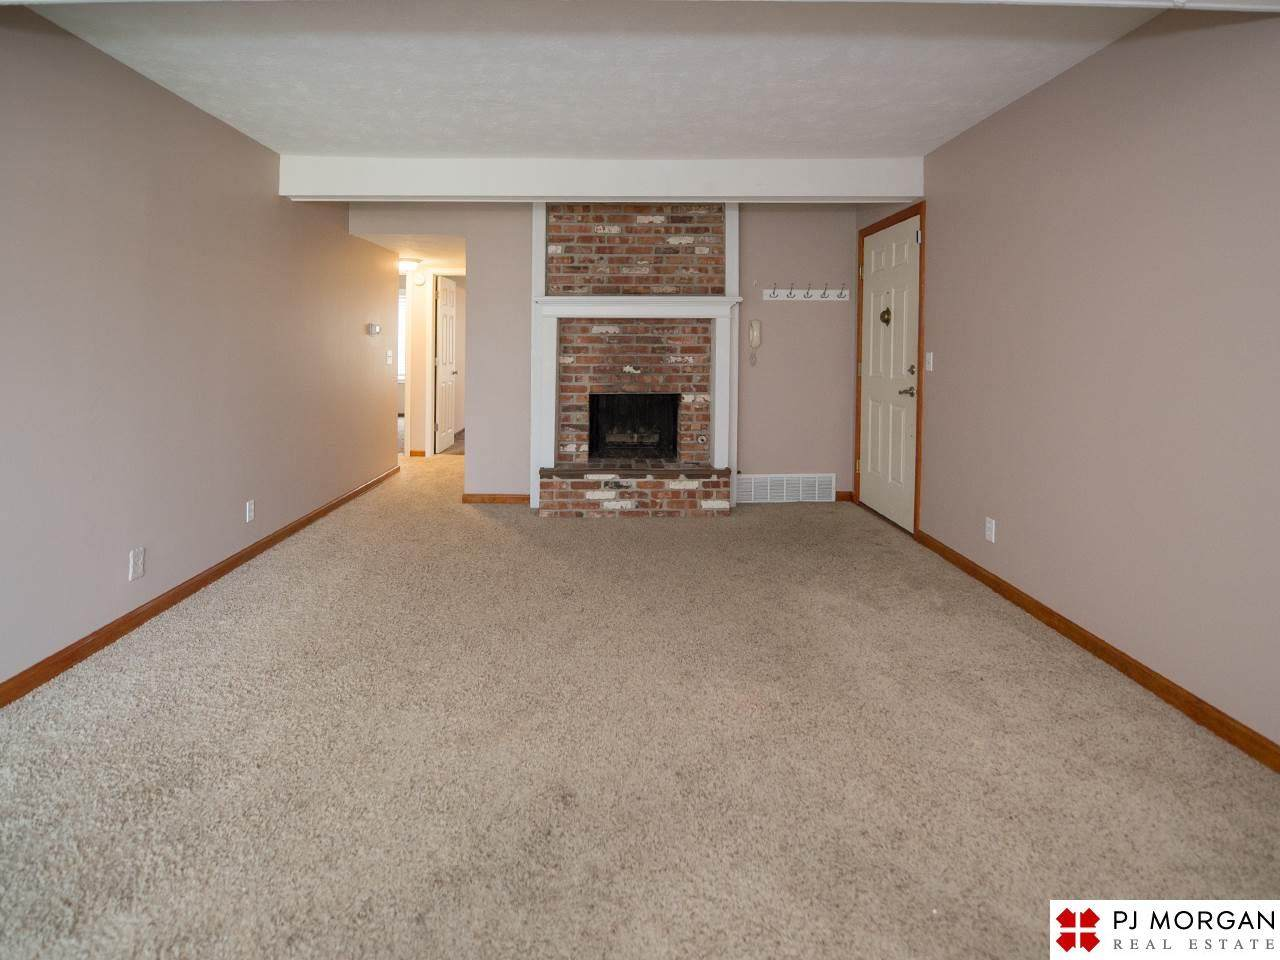 12745 Woodcrest Plaza - Photo 1